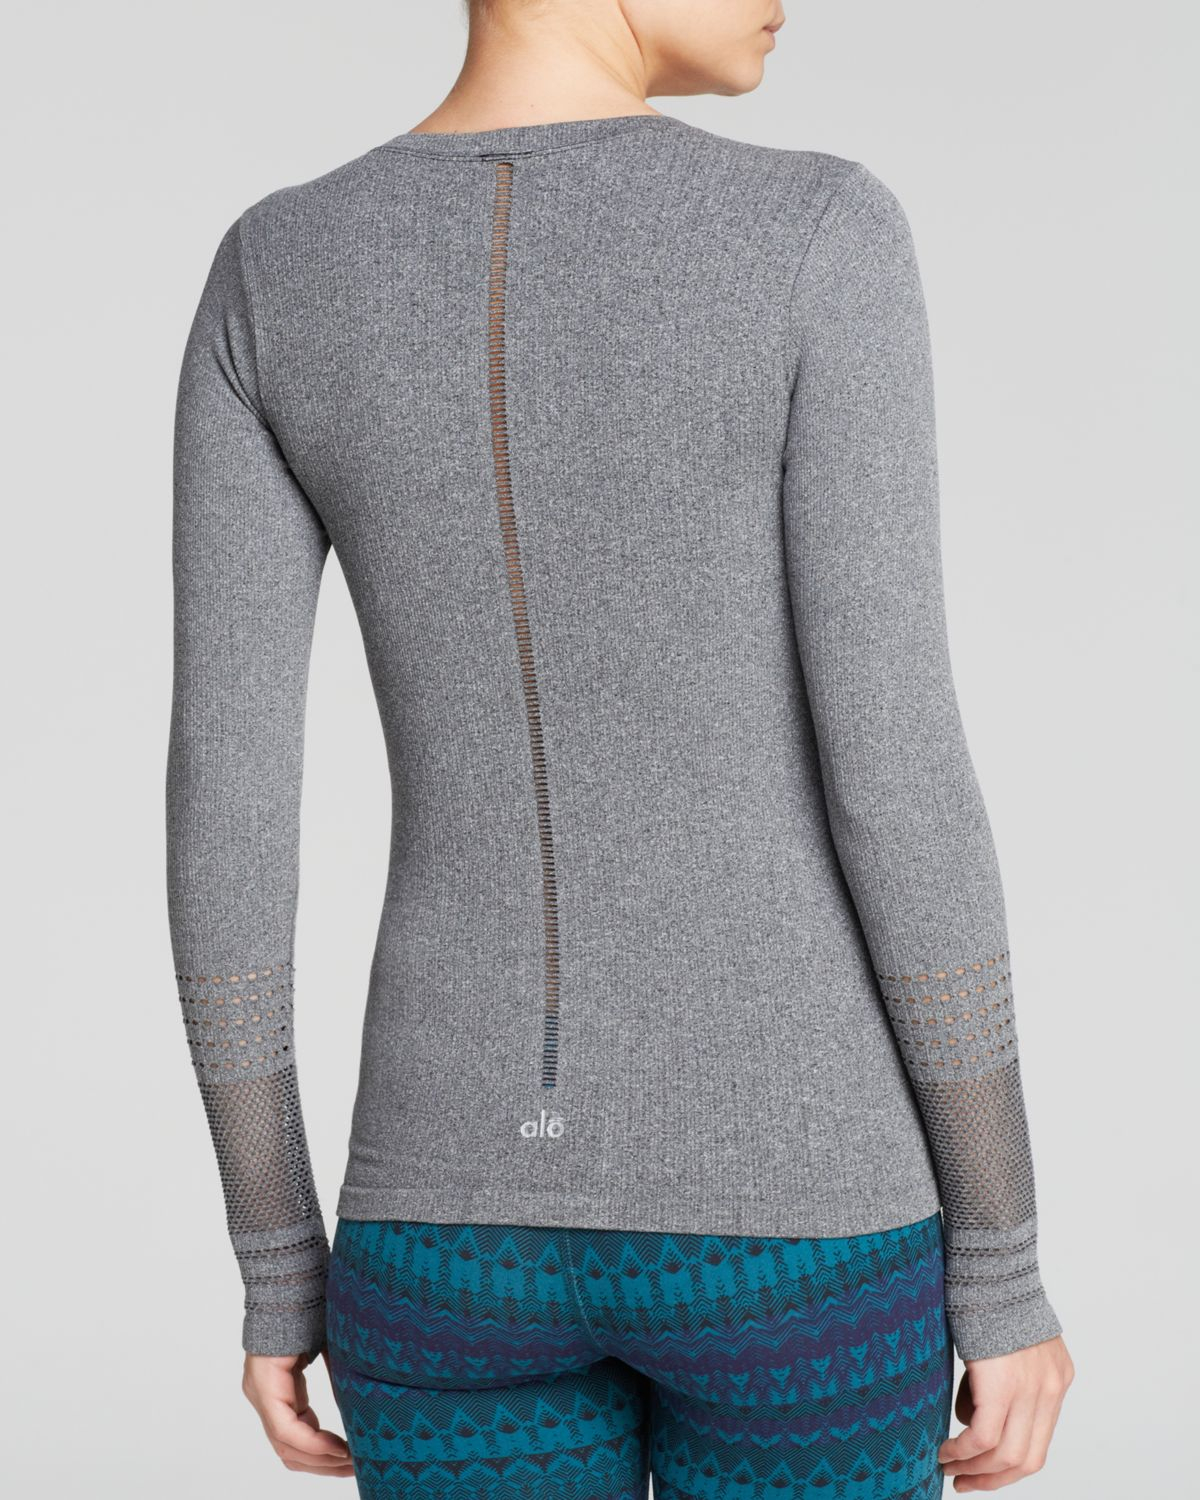 Alo Yoga North Star Seamless Long Sleeve Top In Black